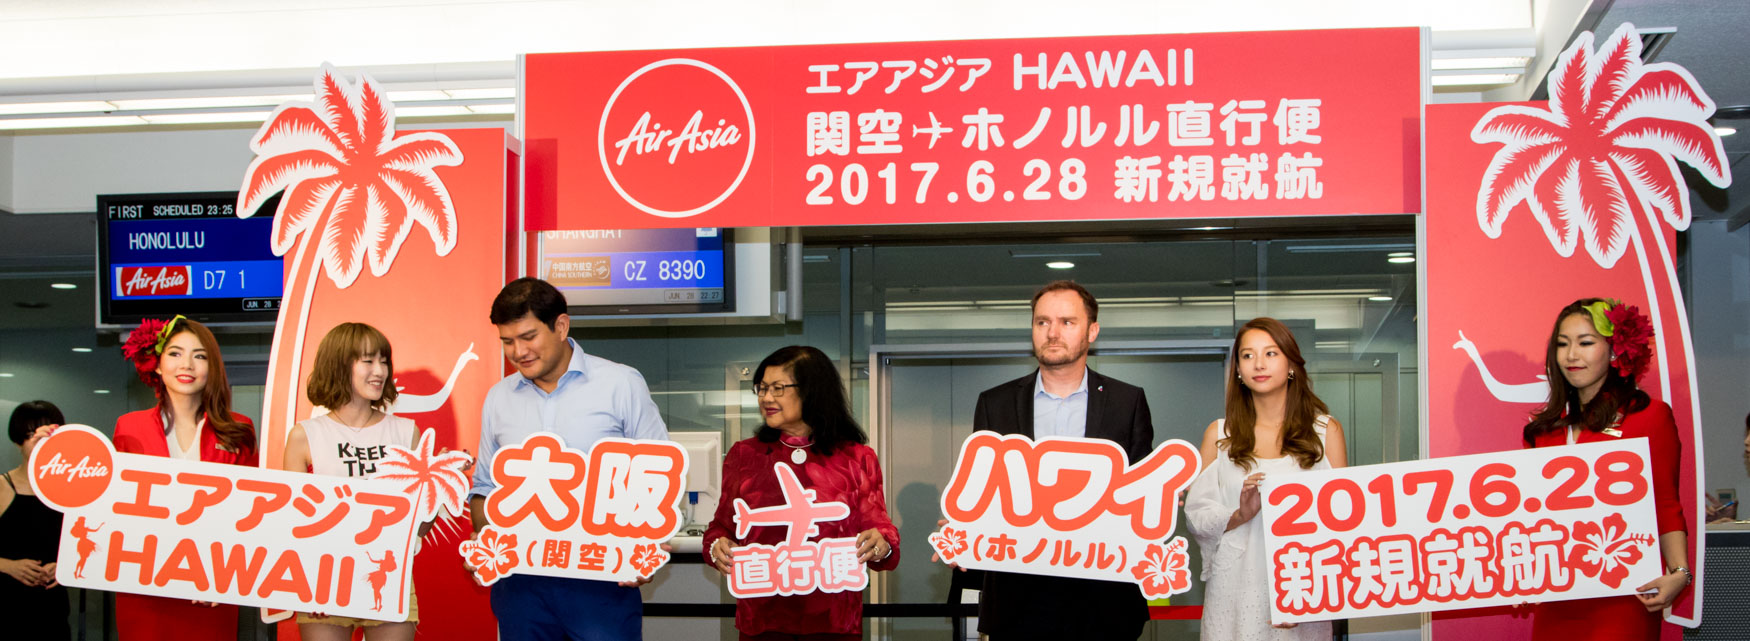 Aloha! A Quick Look at the AirAsia X Inaugural Flight to the United States